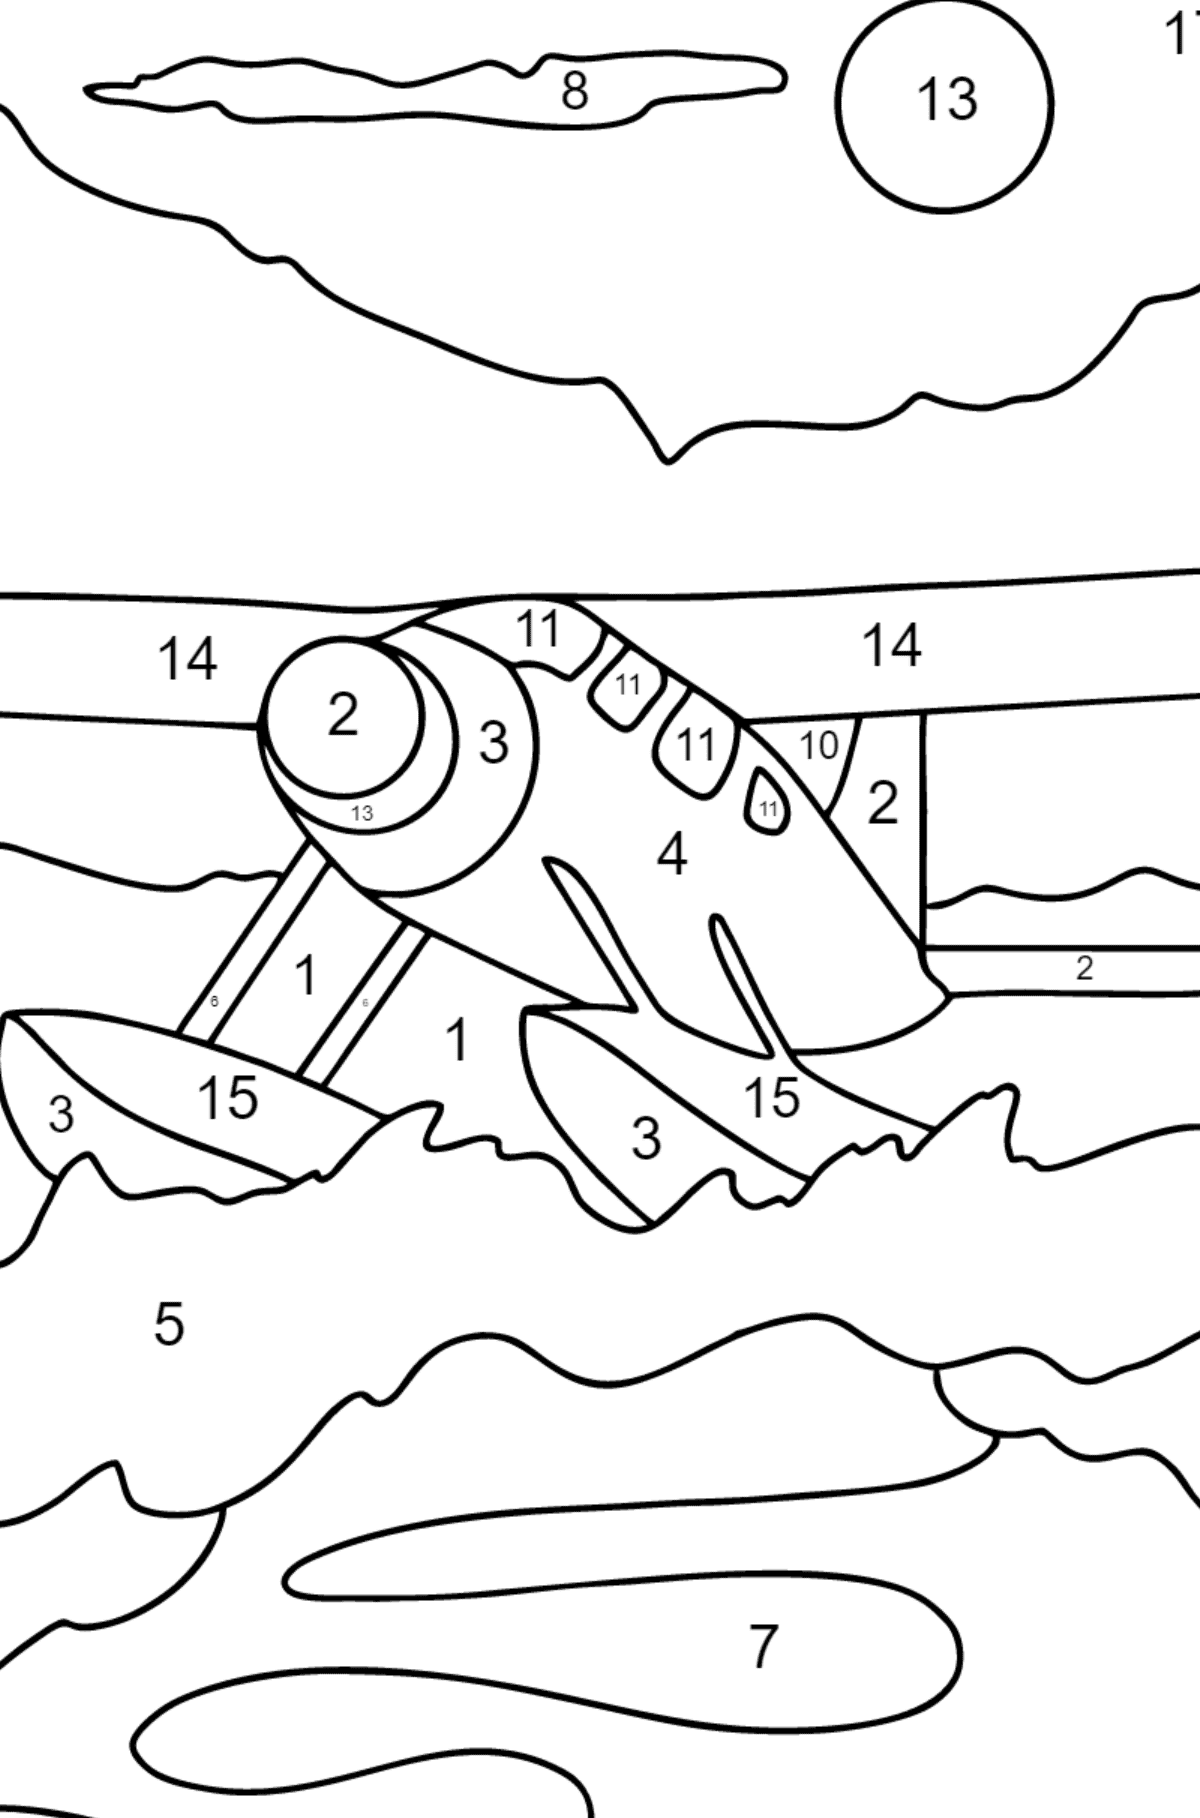 Coloring Page - A Hydroplane - Coloring by Numbers for Kids